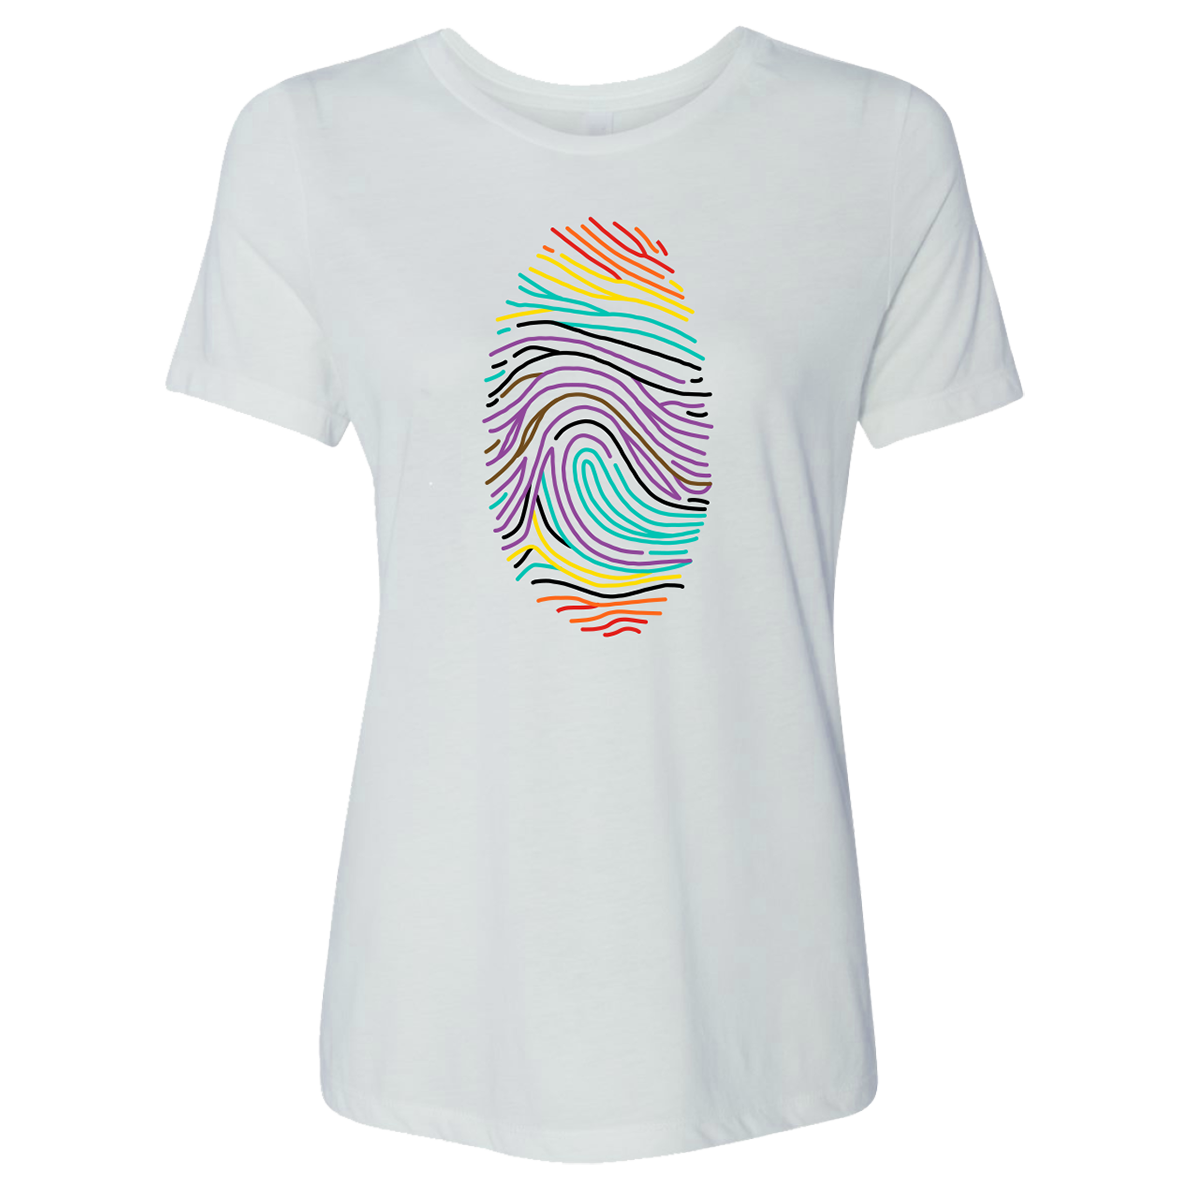 Fitted 2019 Pride T-Shirt